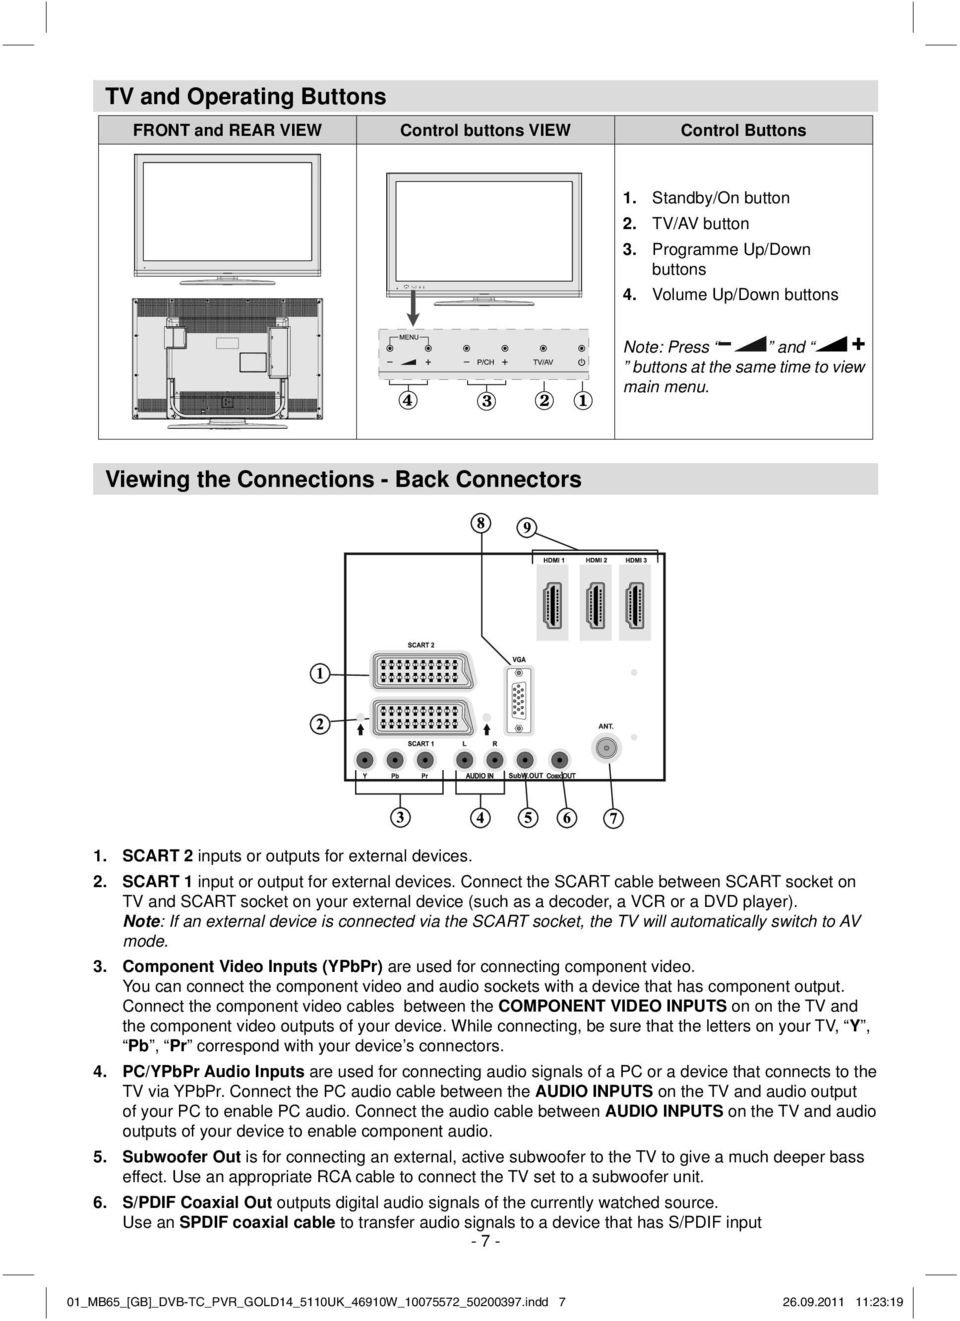 SCART 2 inputs or outputs for external devices. 2. SCART 1 input or output for external devices.